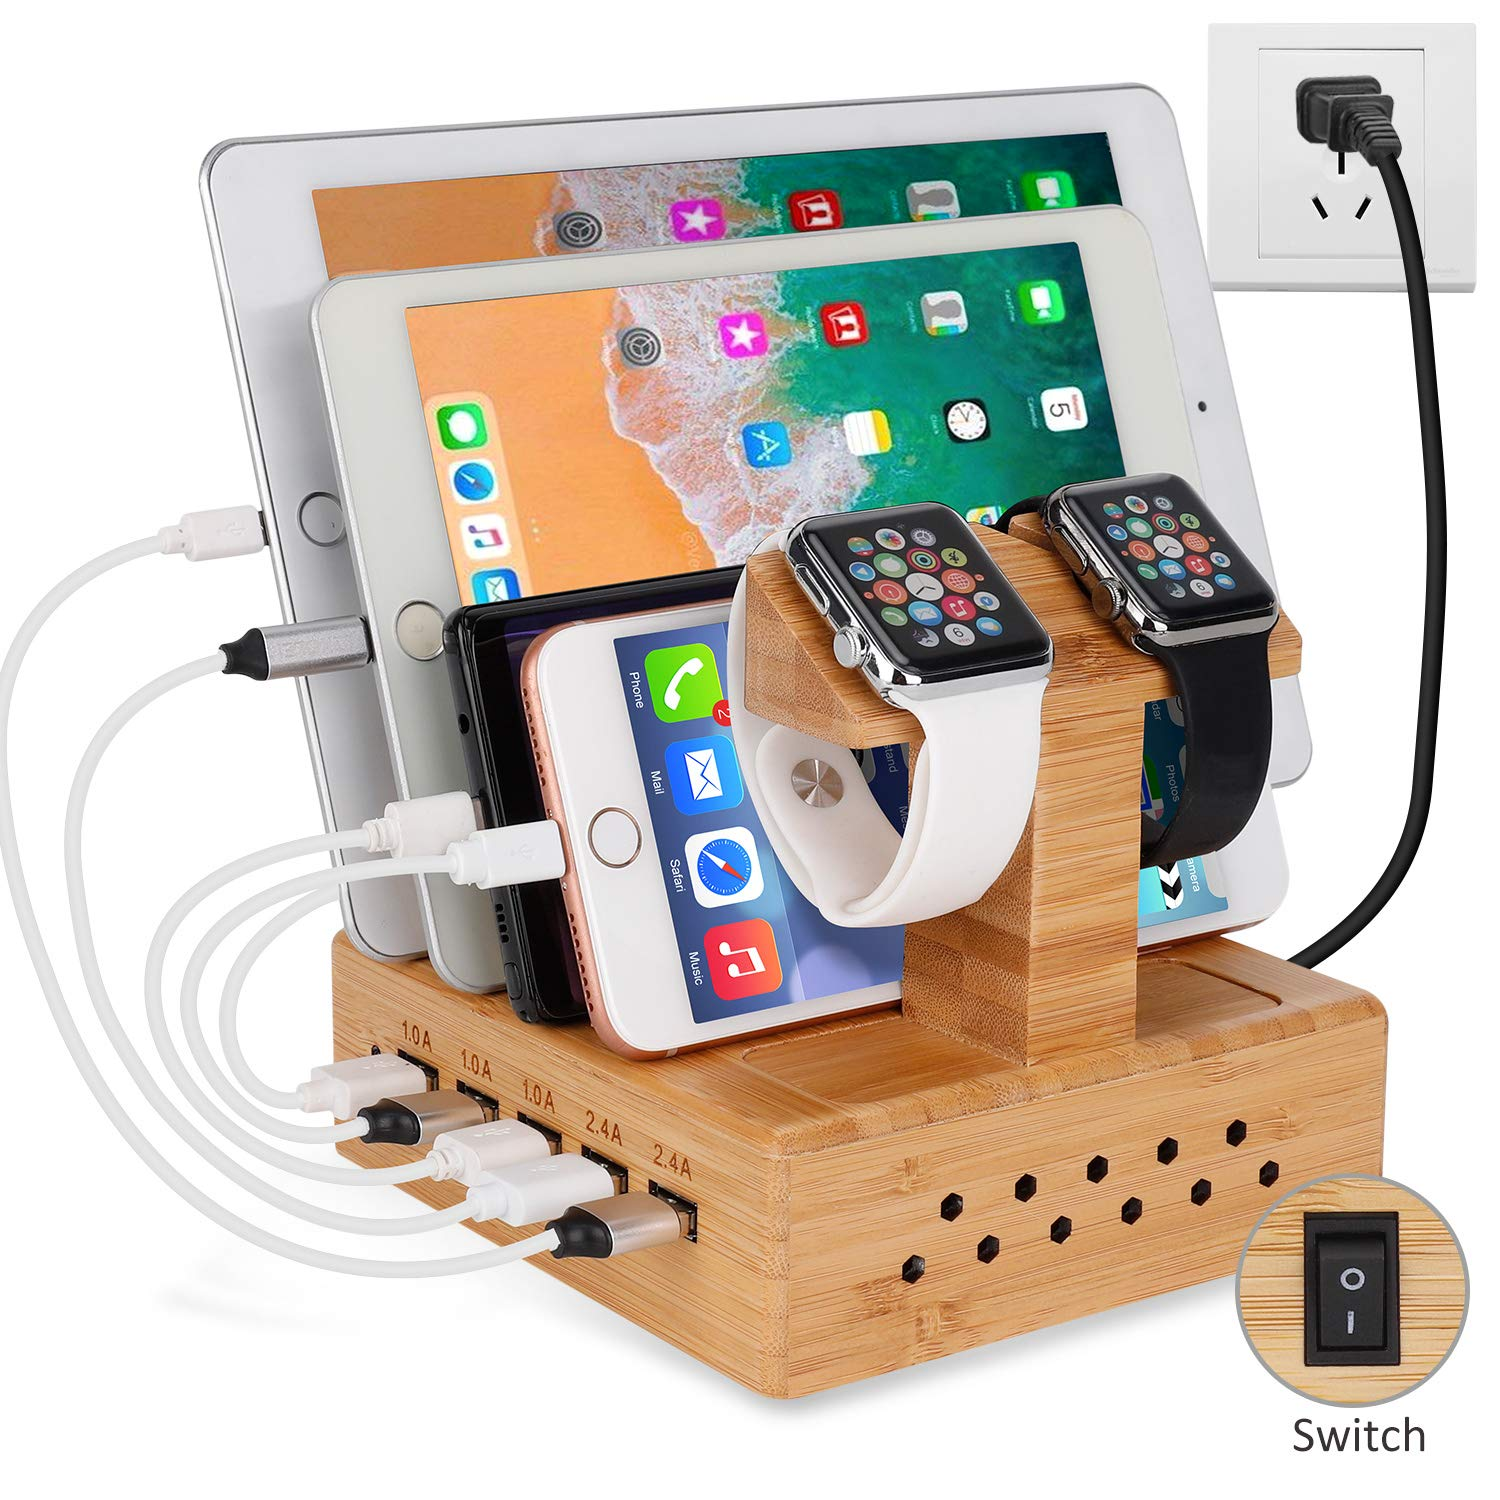 Yisen Wood Bamboo Foldable Multi-Angle Stand Holder for Smartphone, Tablet, iPhone 8/8 Plus/7/7 Plus, iPhone X, Galaxy Note 8, iPad 10.5, Nintendo Switch, by Yisen